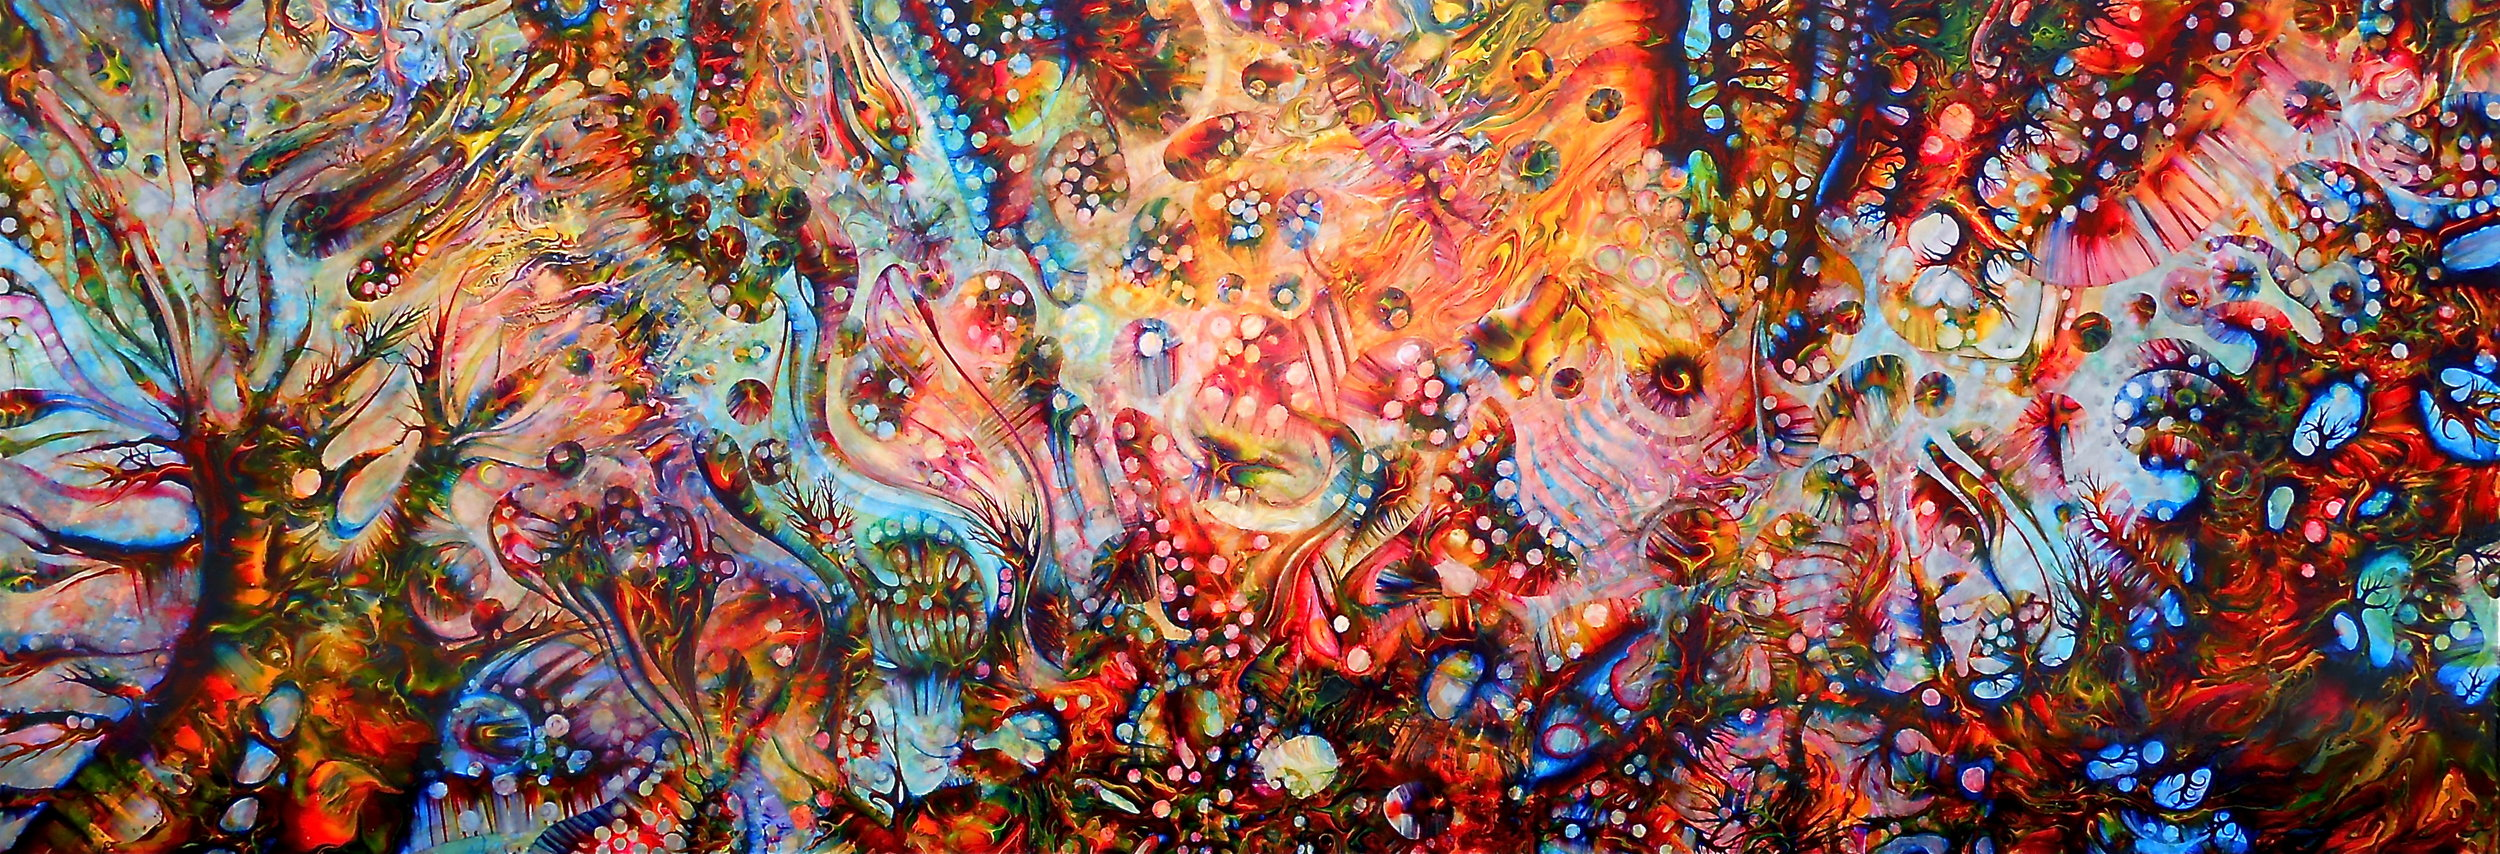 "11.) Kristen Carleton, ""Heart of the Psychedelic Jungle"", 2012, 32cm x 91cm, Acrylic on Polymer.JPG"